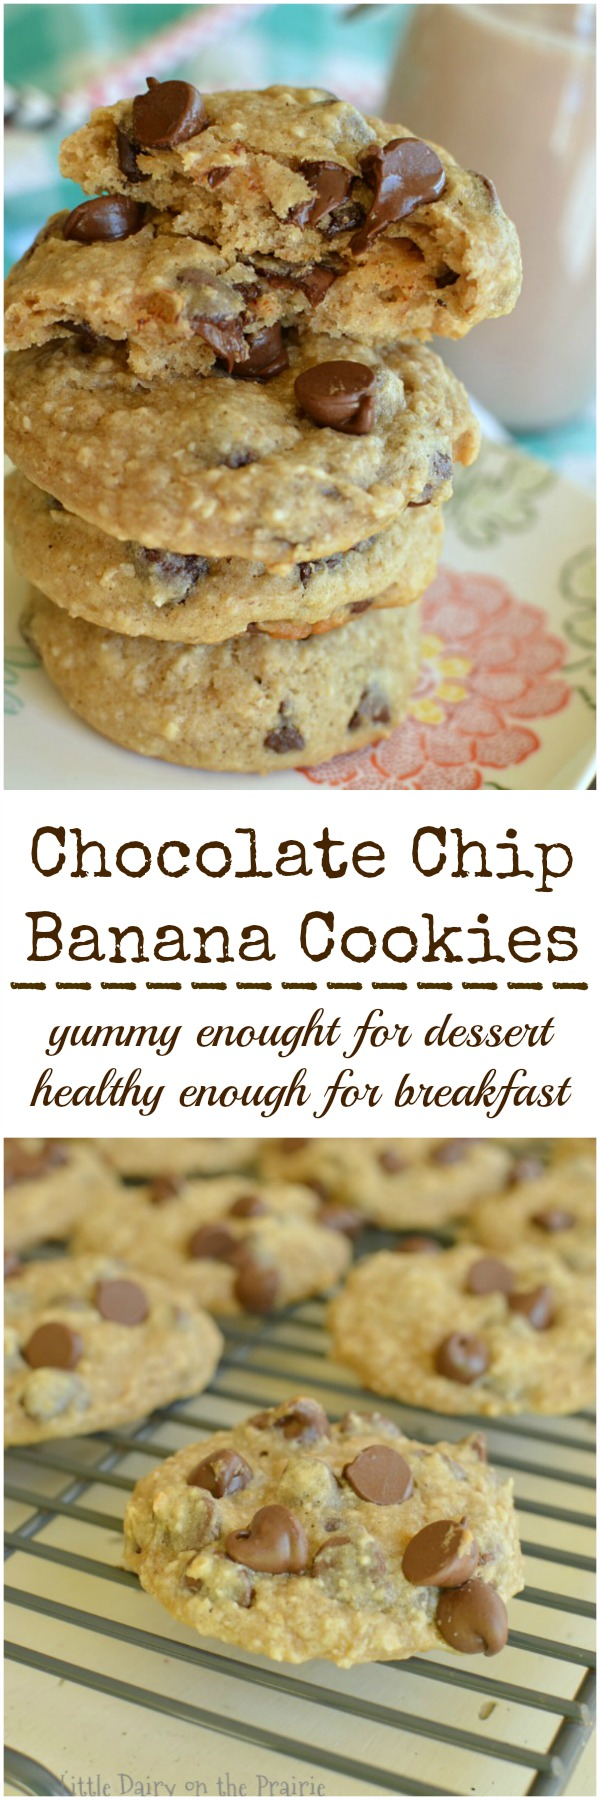 Healthy Chocolate Chip Banana Cookies - Little Dairy On the Prairie